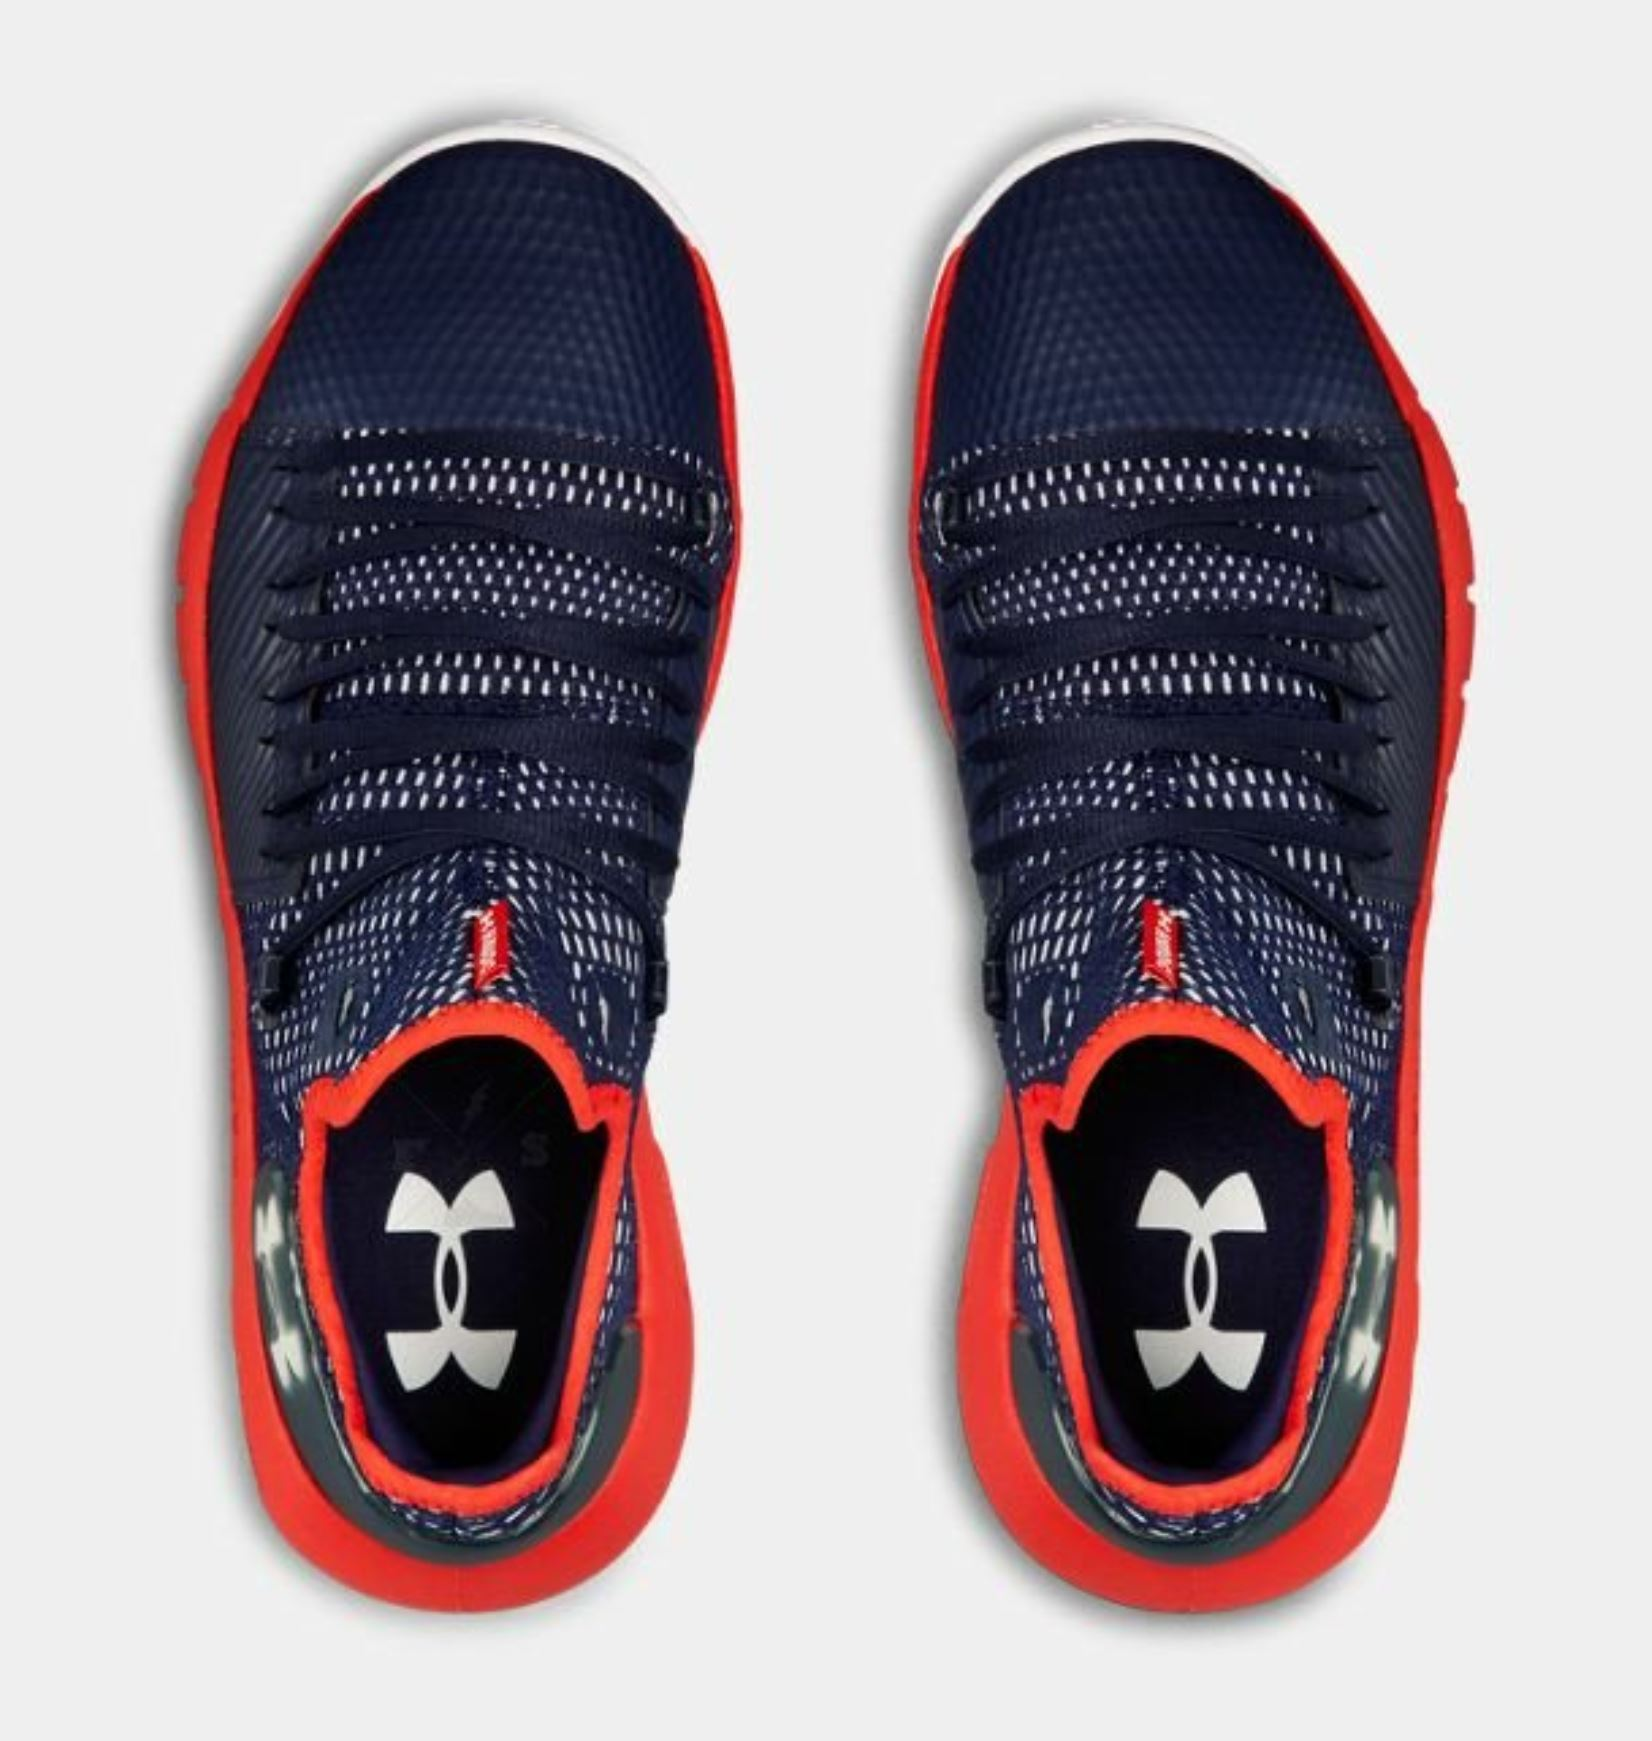 detailed look cf228 c1926 The Under Armour Havoc Low Will Bring HOVR to Basketball ...